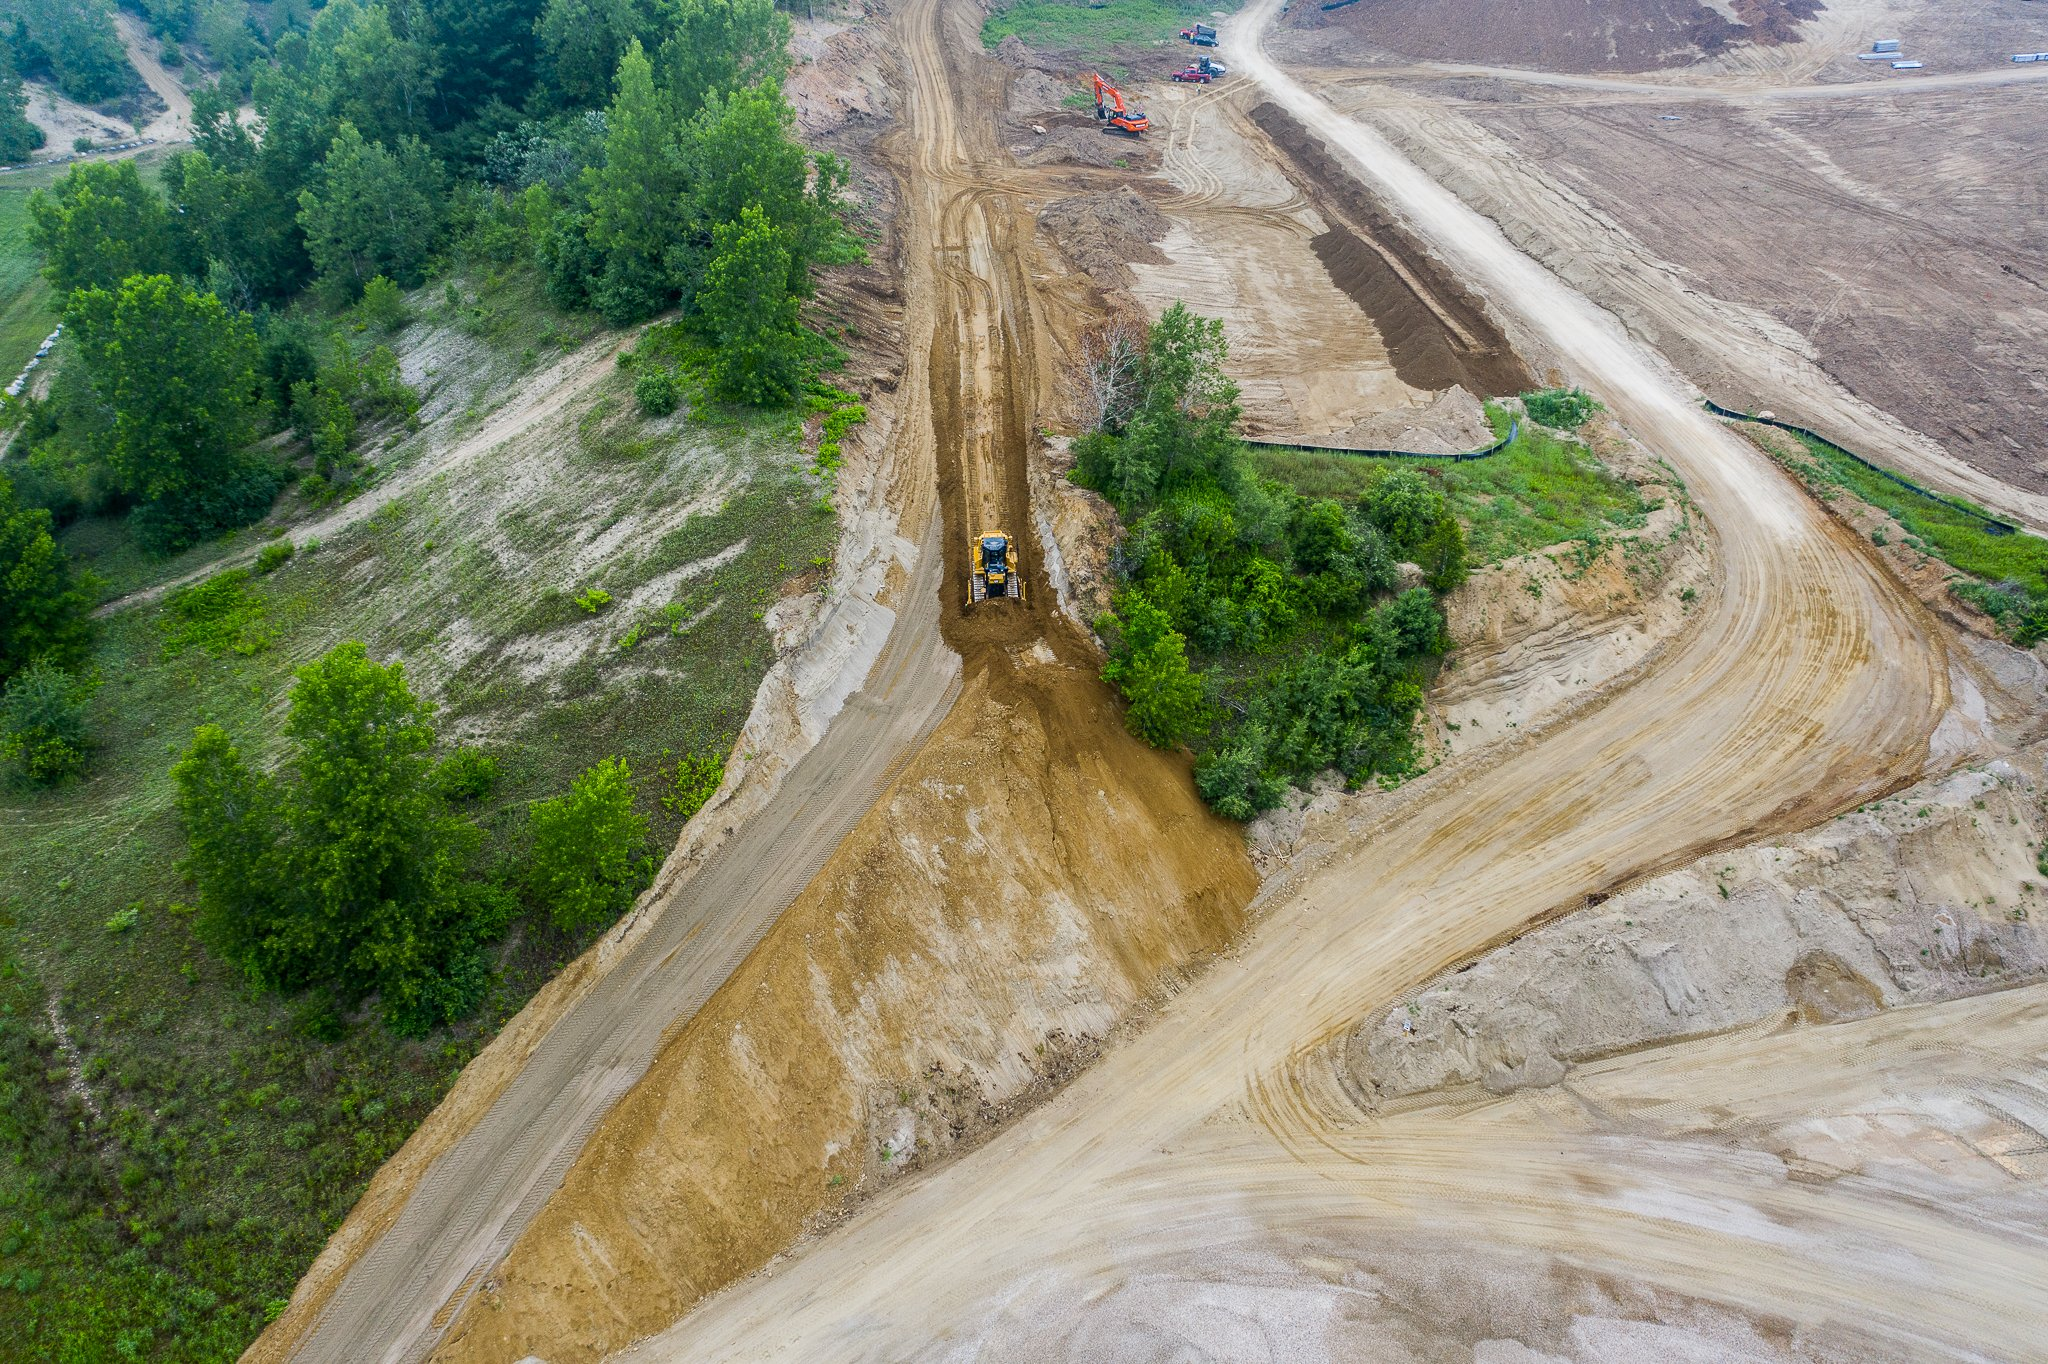 Western Earthworks, heavy civil construction, site work, landscaping, site clearing, concrete work, foundation excavation, commercial paving, land clearing, heavy construction, green energy, erosion control, hydroseeding, demolition, timber matting